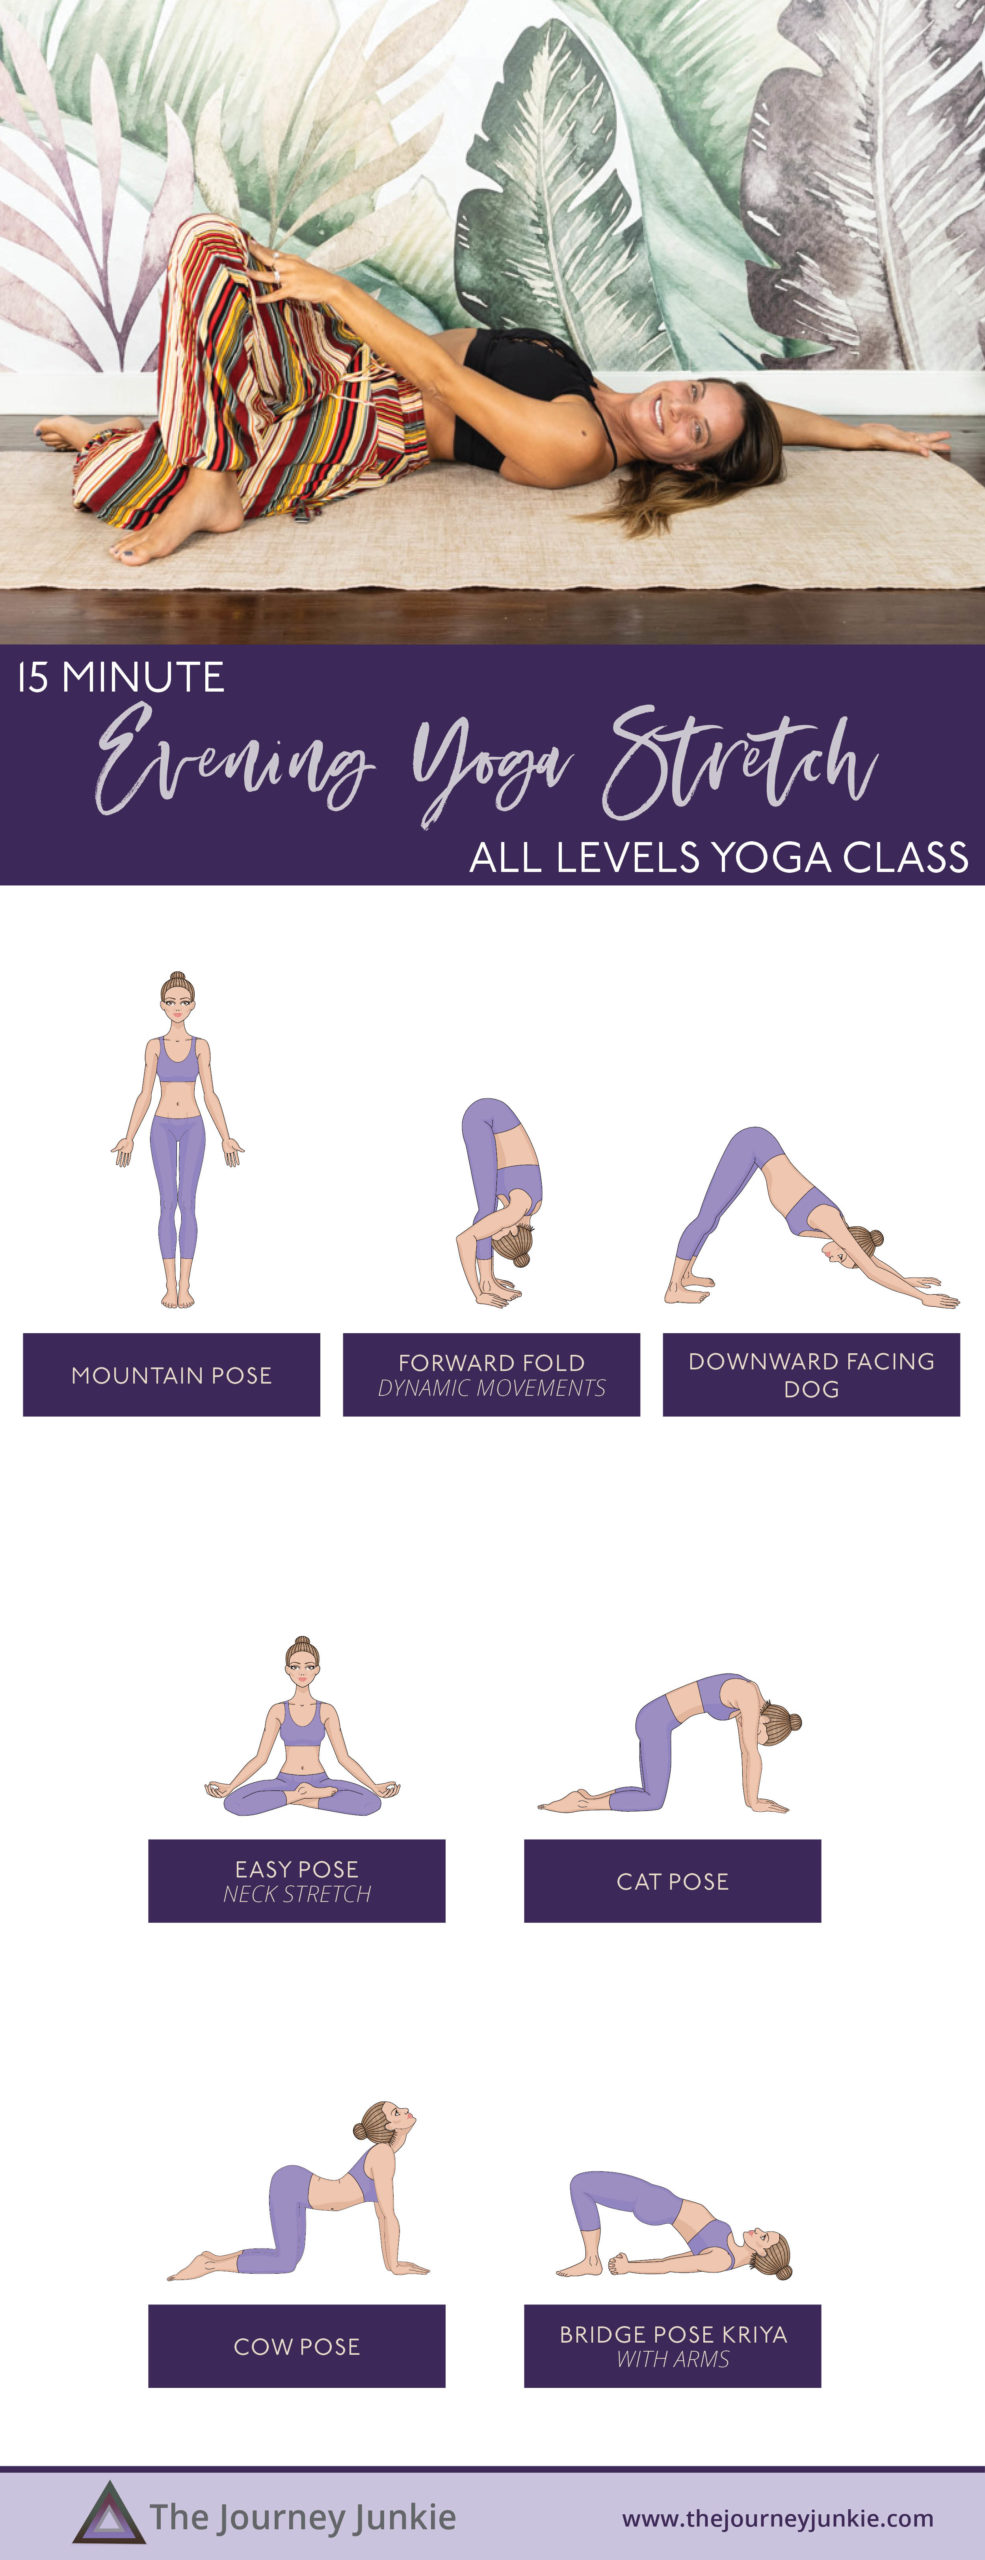 15 Minute Evening Yoga Stretch to End Your Day & Feel Proud of Yourself